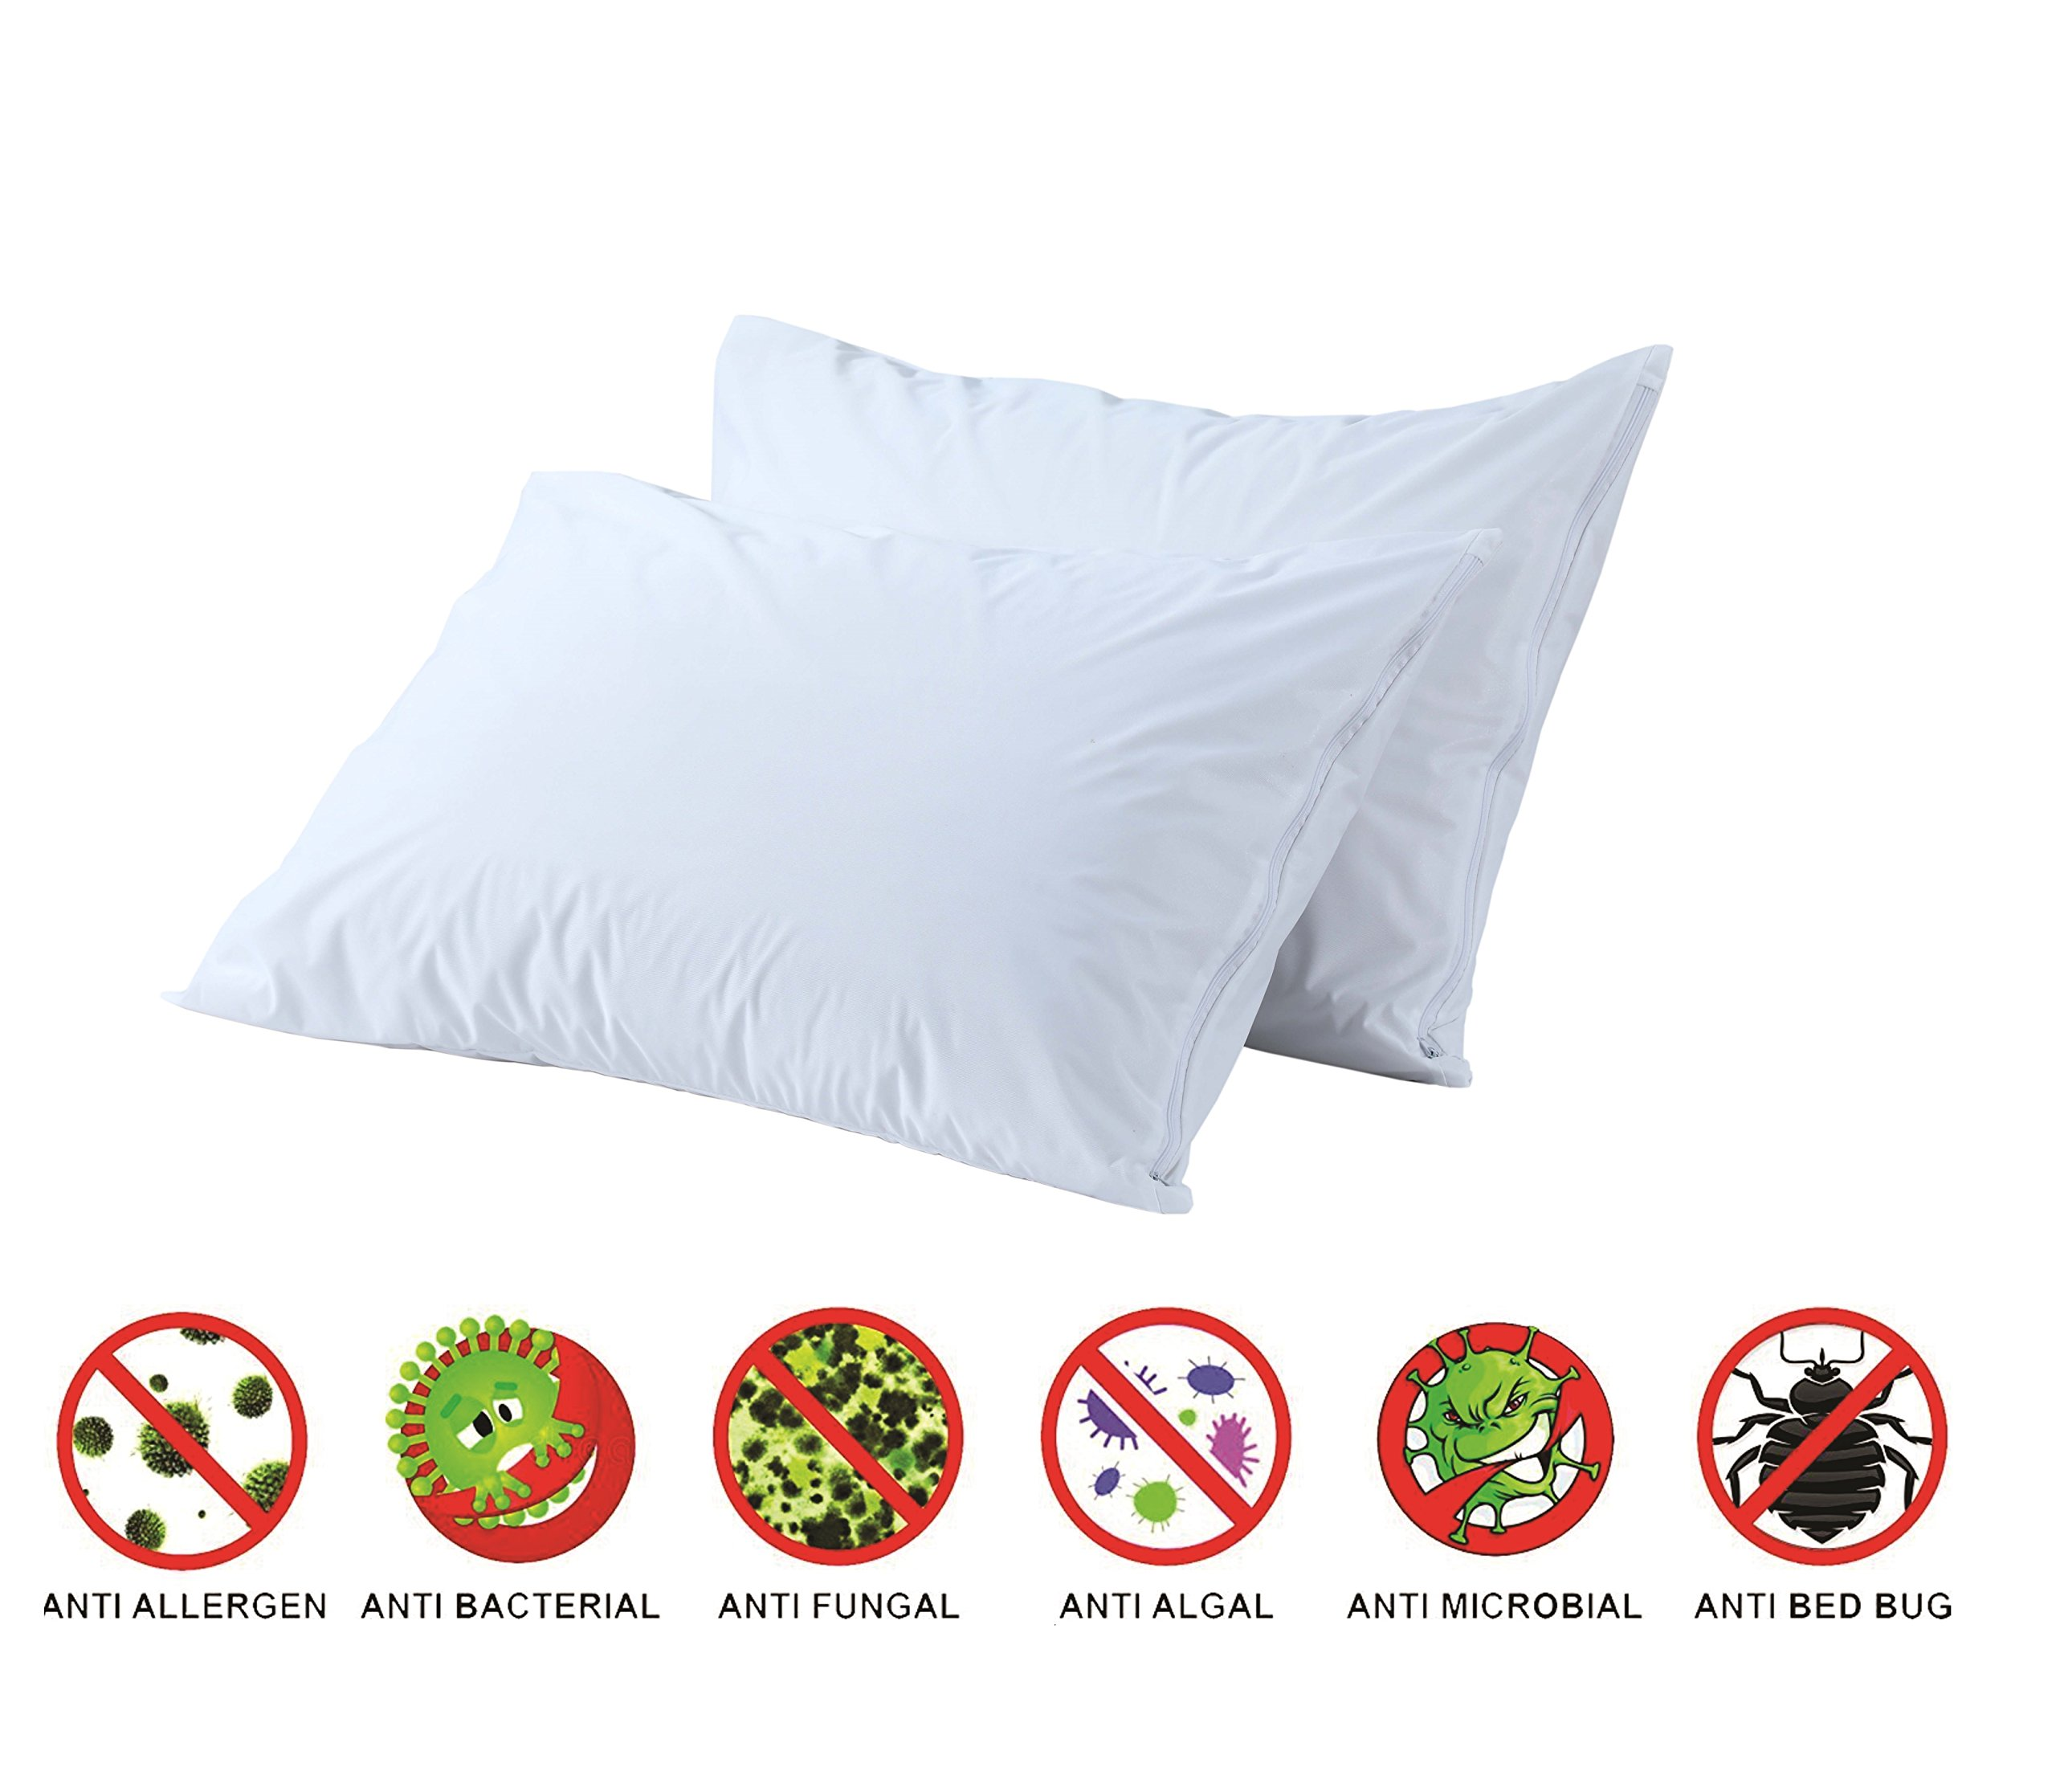 Anti Allergy Bed Bug Dust Mite Proof Pillow Protectors Pair 100% Cotton Standard Premium Pillow Covers Non Crinkly 2 Pack Zippered Cases Anti Bacterial Breathable Non Noisy Luxury